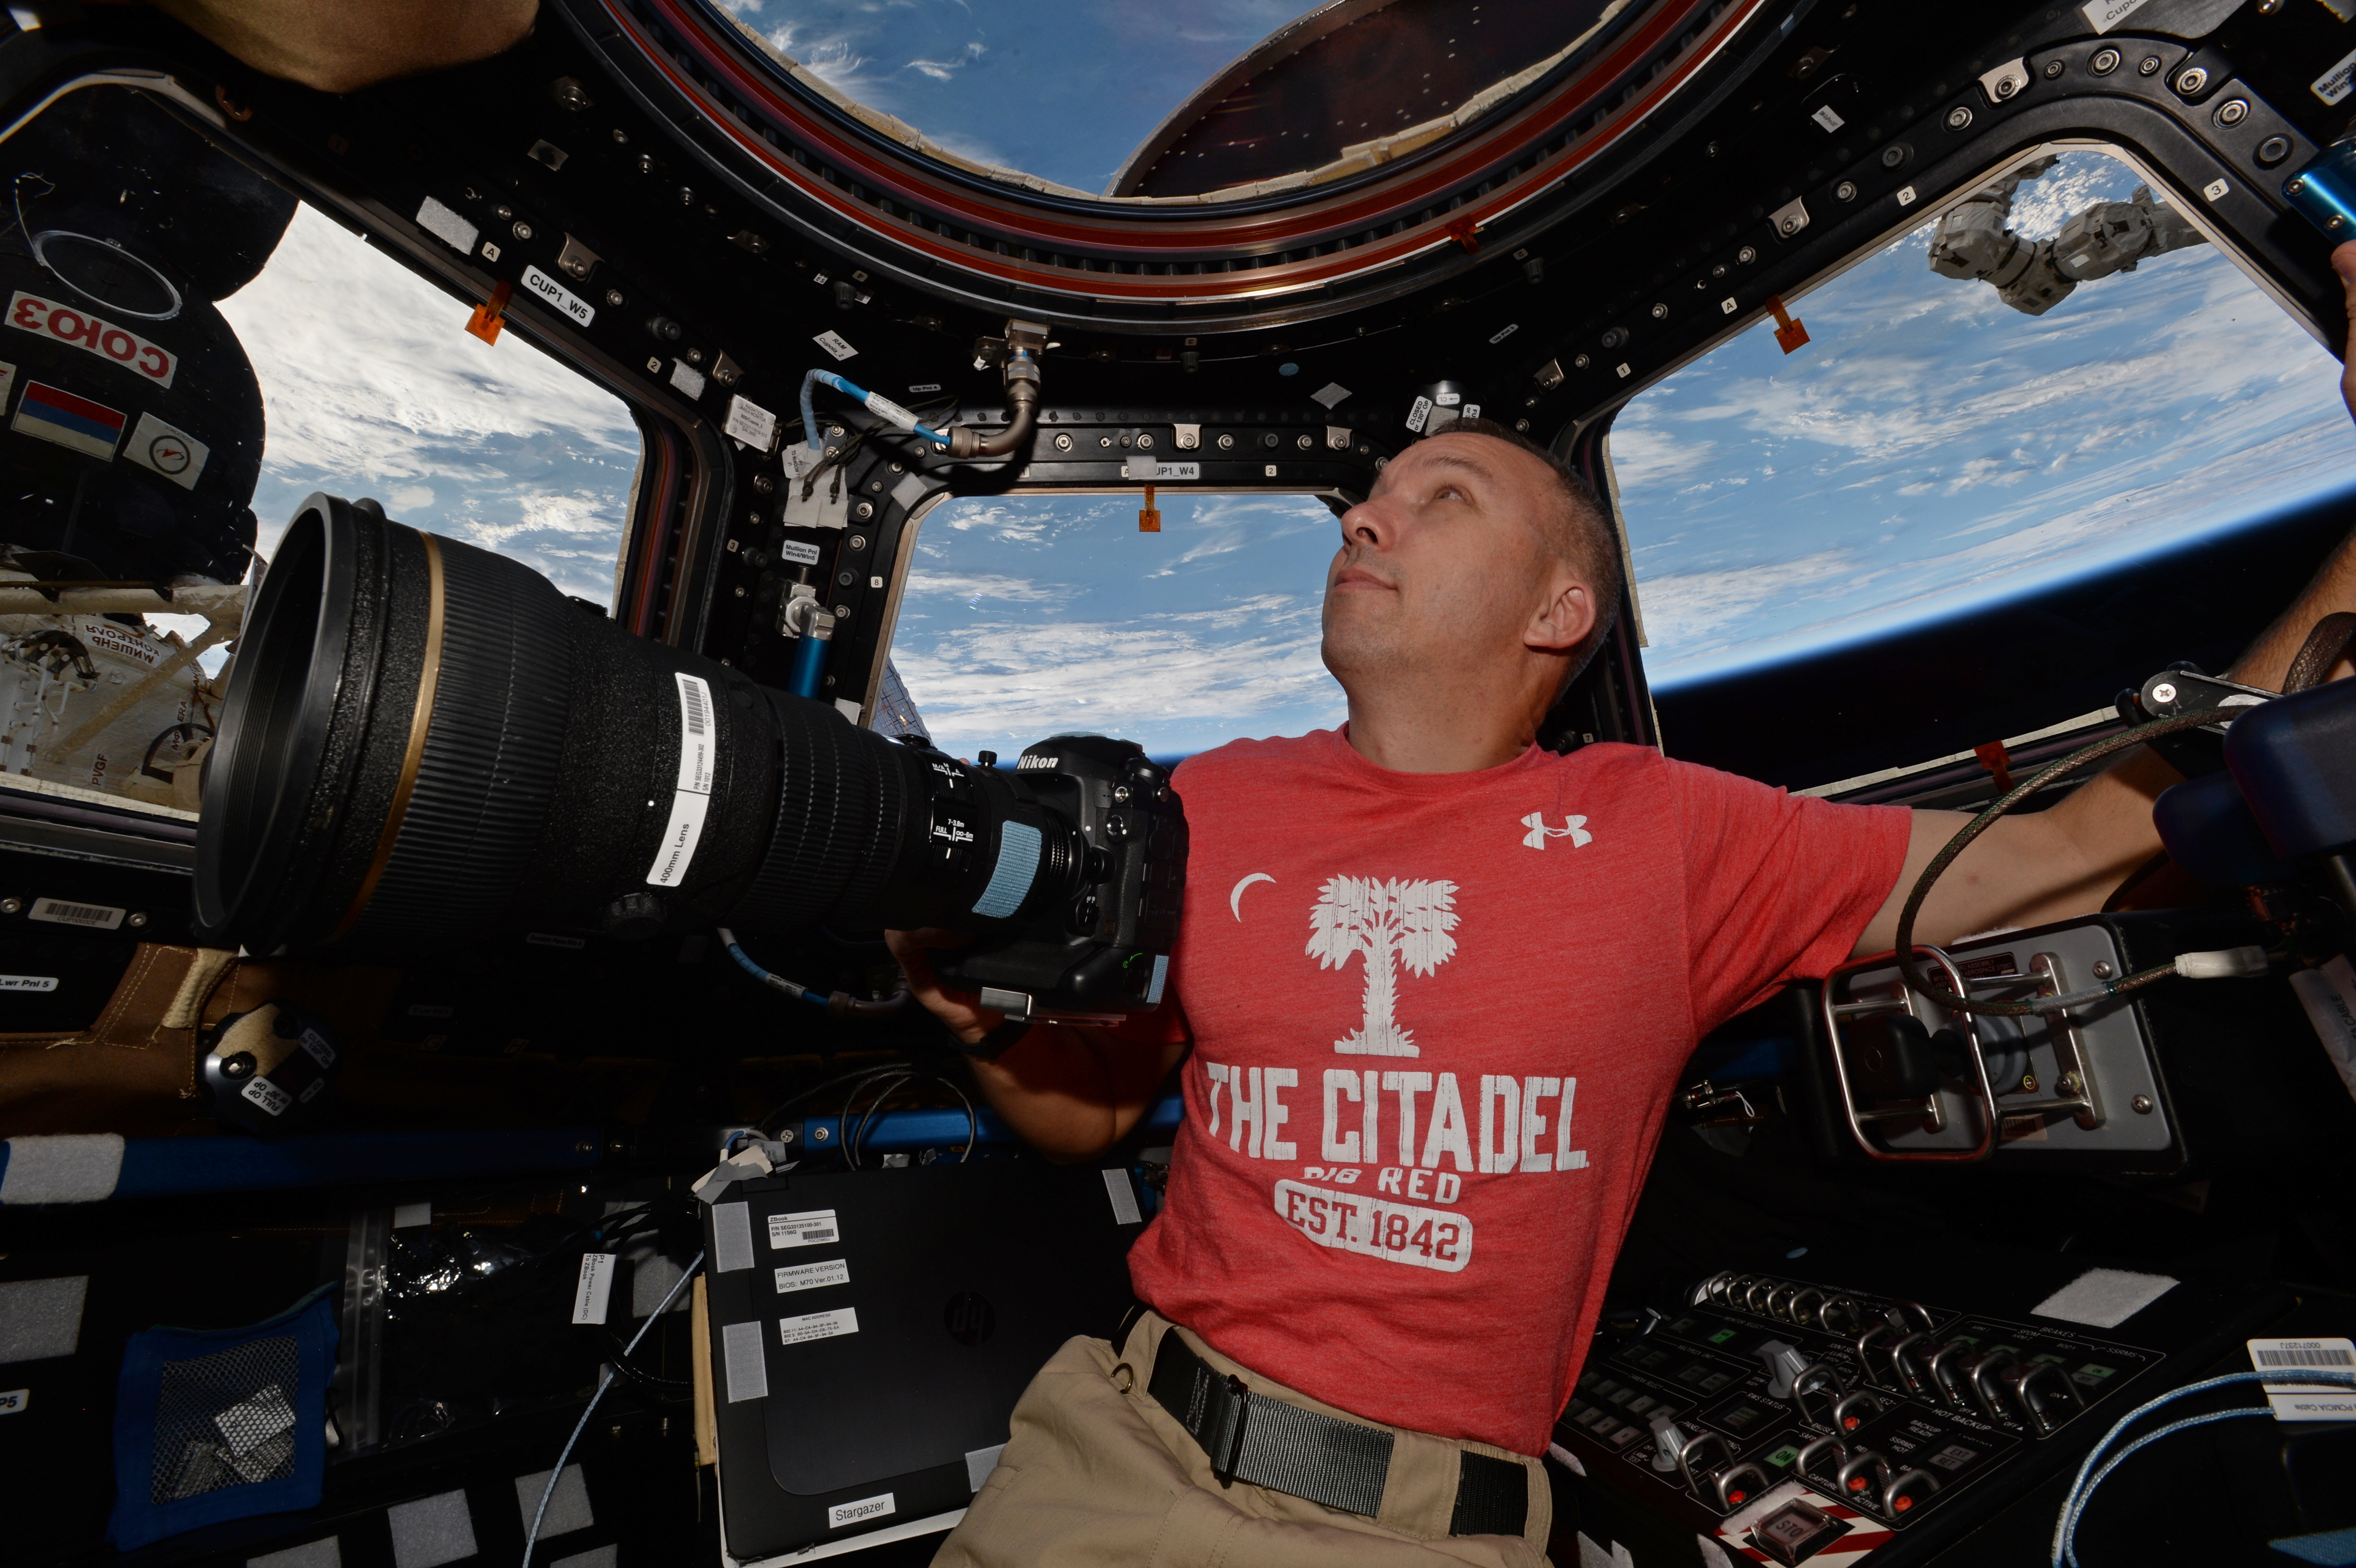 nasa astronaut citadel alumnus bresnik wears citadel shirt in space